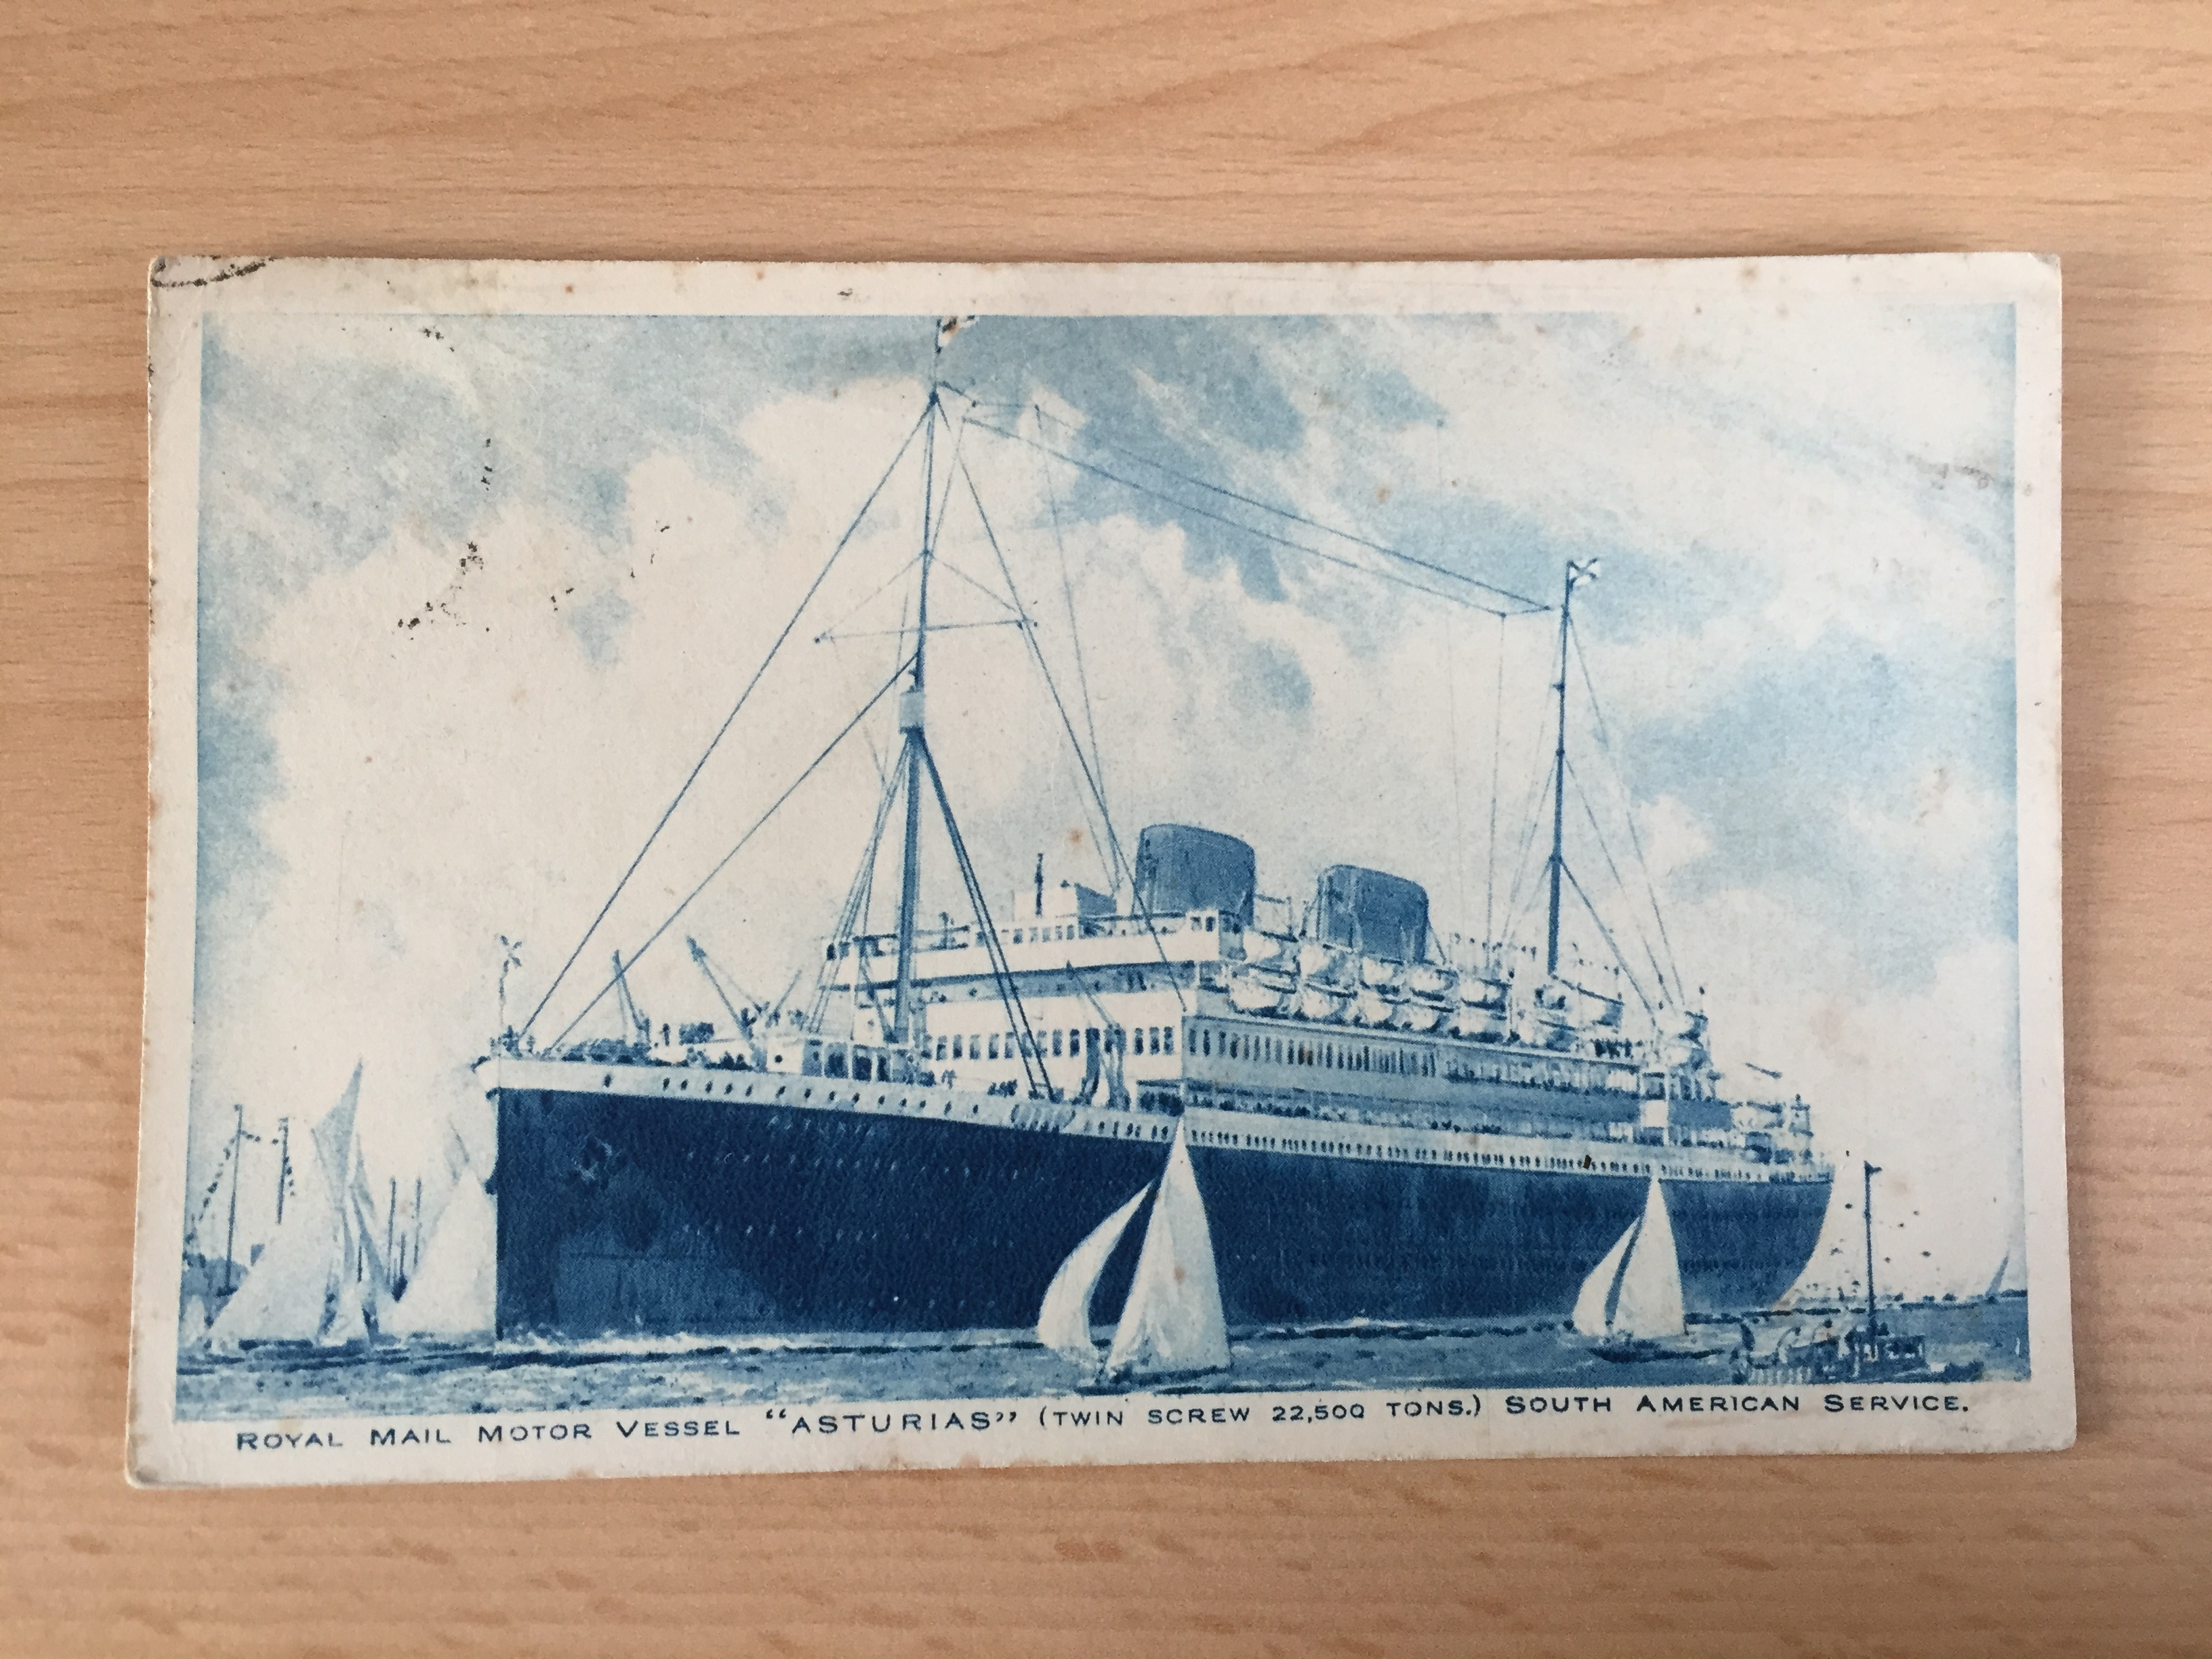 EARLY USED COLOUR POSTCARD FROM THE ROYAL MAIL LINE VESSEL THE ASTURIAS WHICH WAS POSTED 23rd MARCH 1926